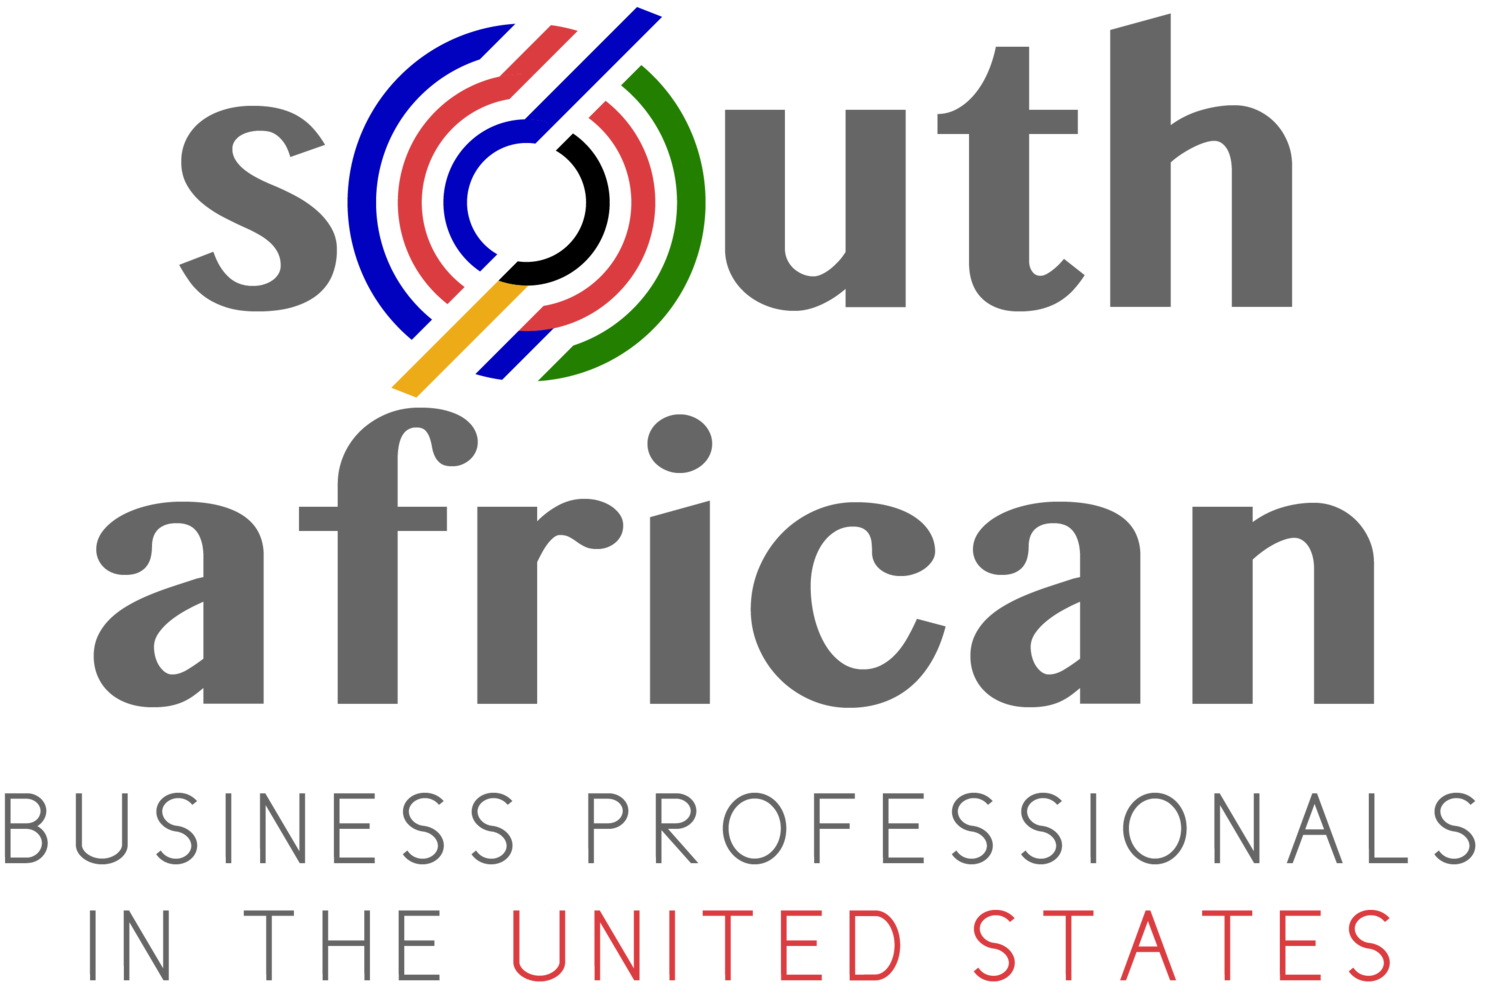 Discussion clipart business networking. New events south african